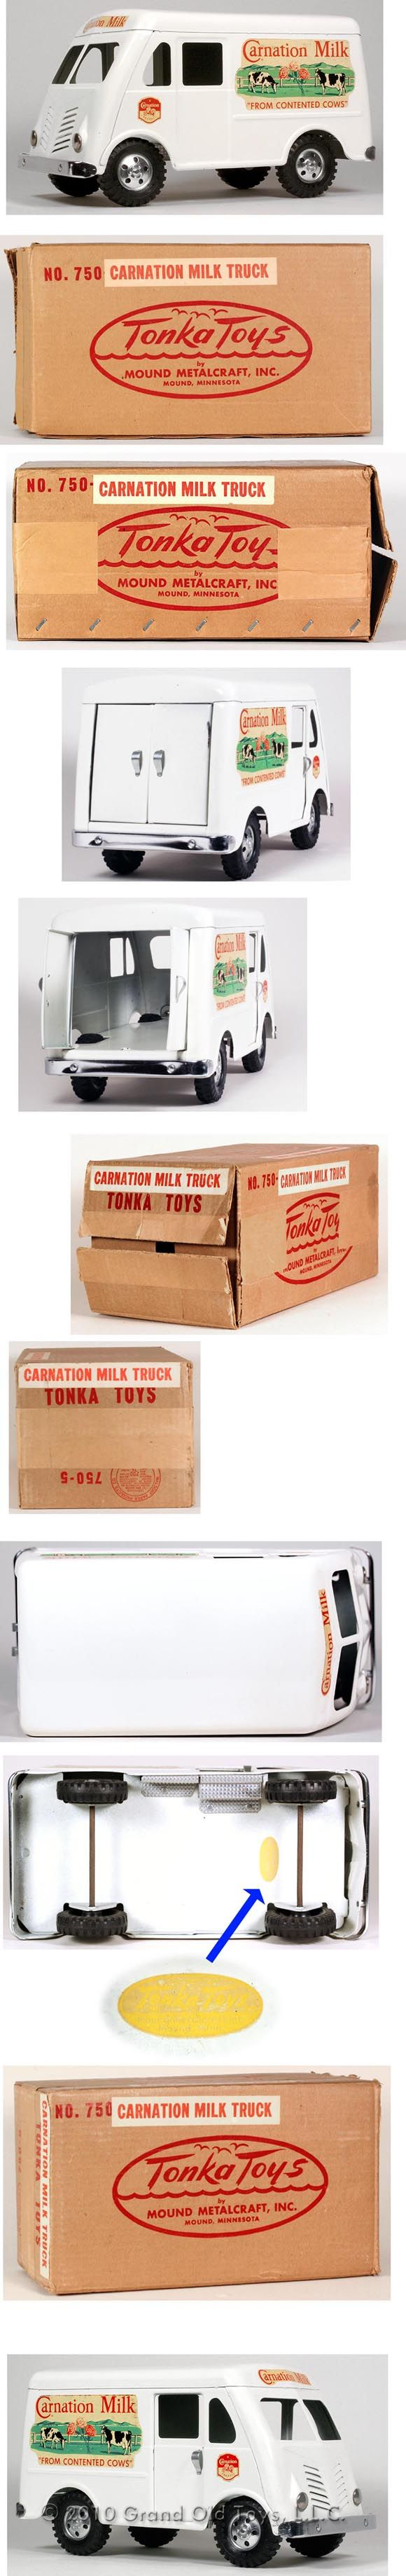 1955 Tonka Carnation Milk Truck In Original Box. 12in long